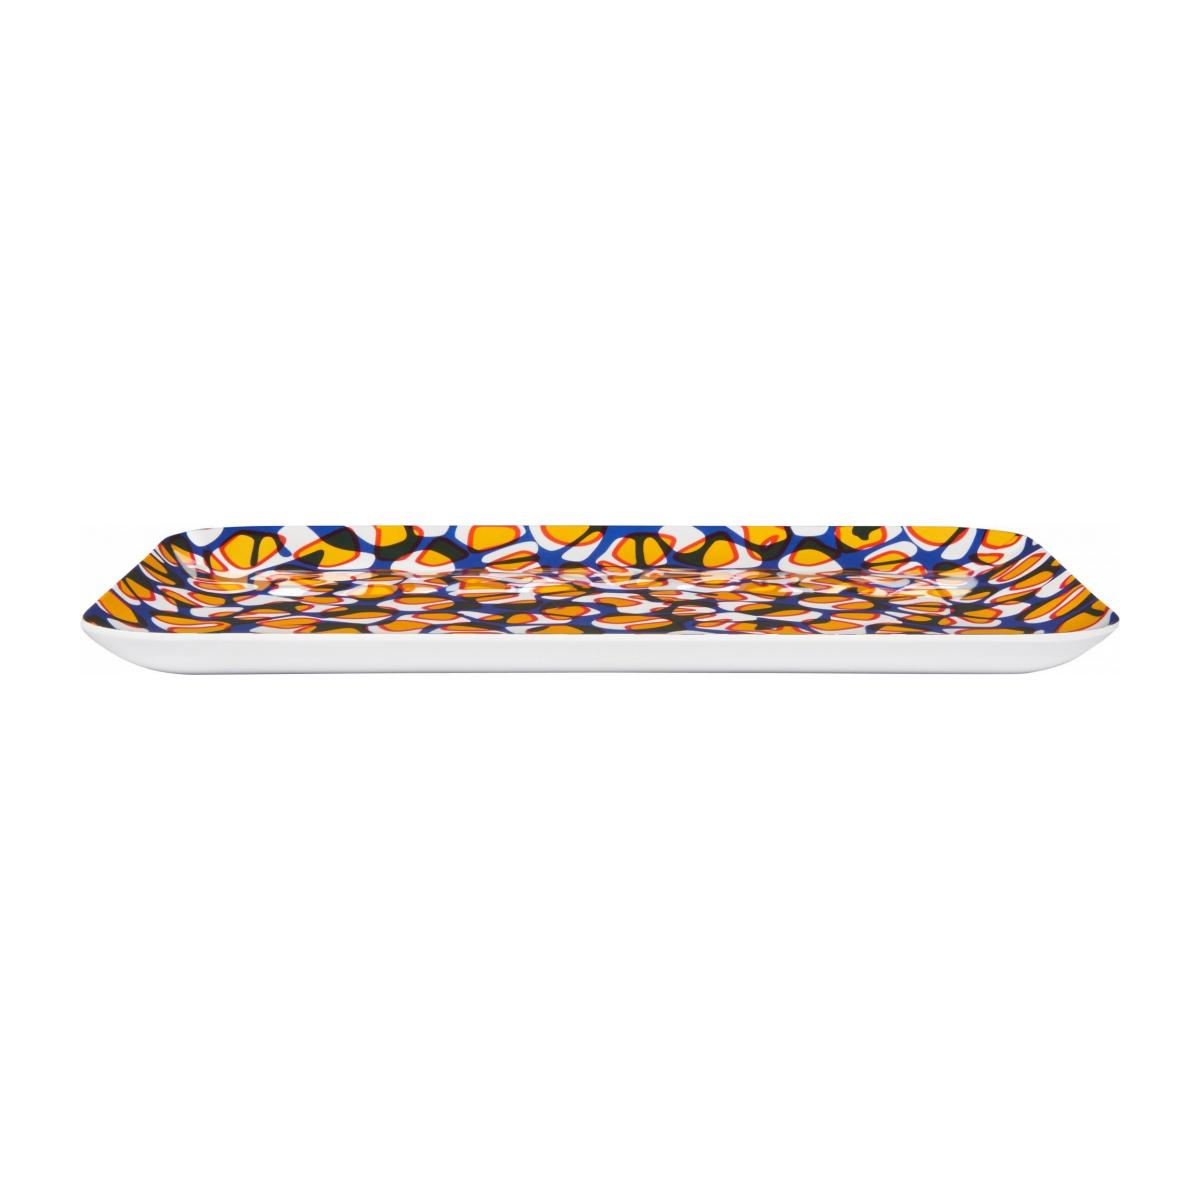 Tray made of melamine 35x25cm, with patterns n°2